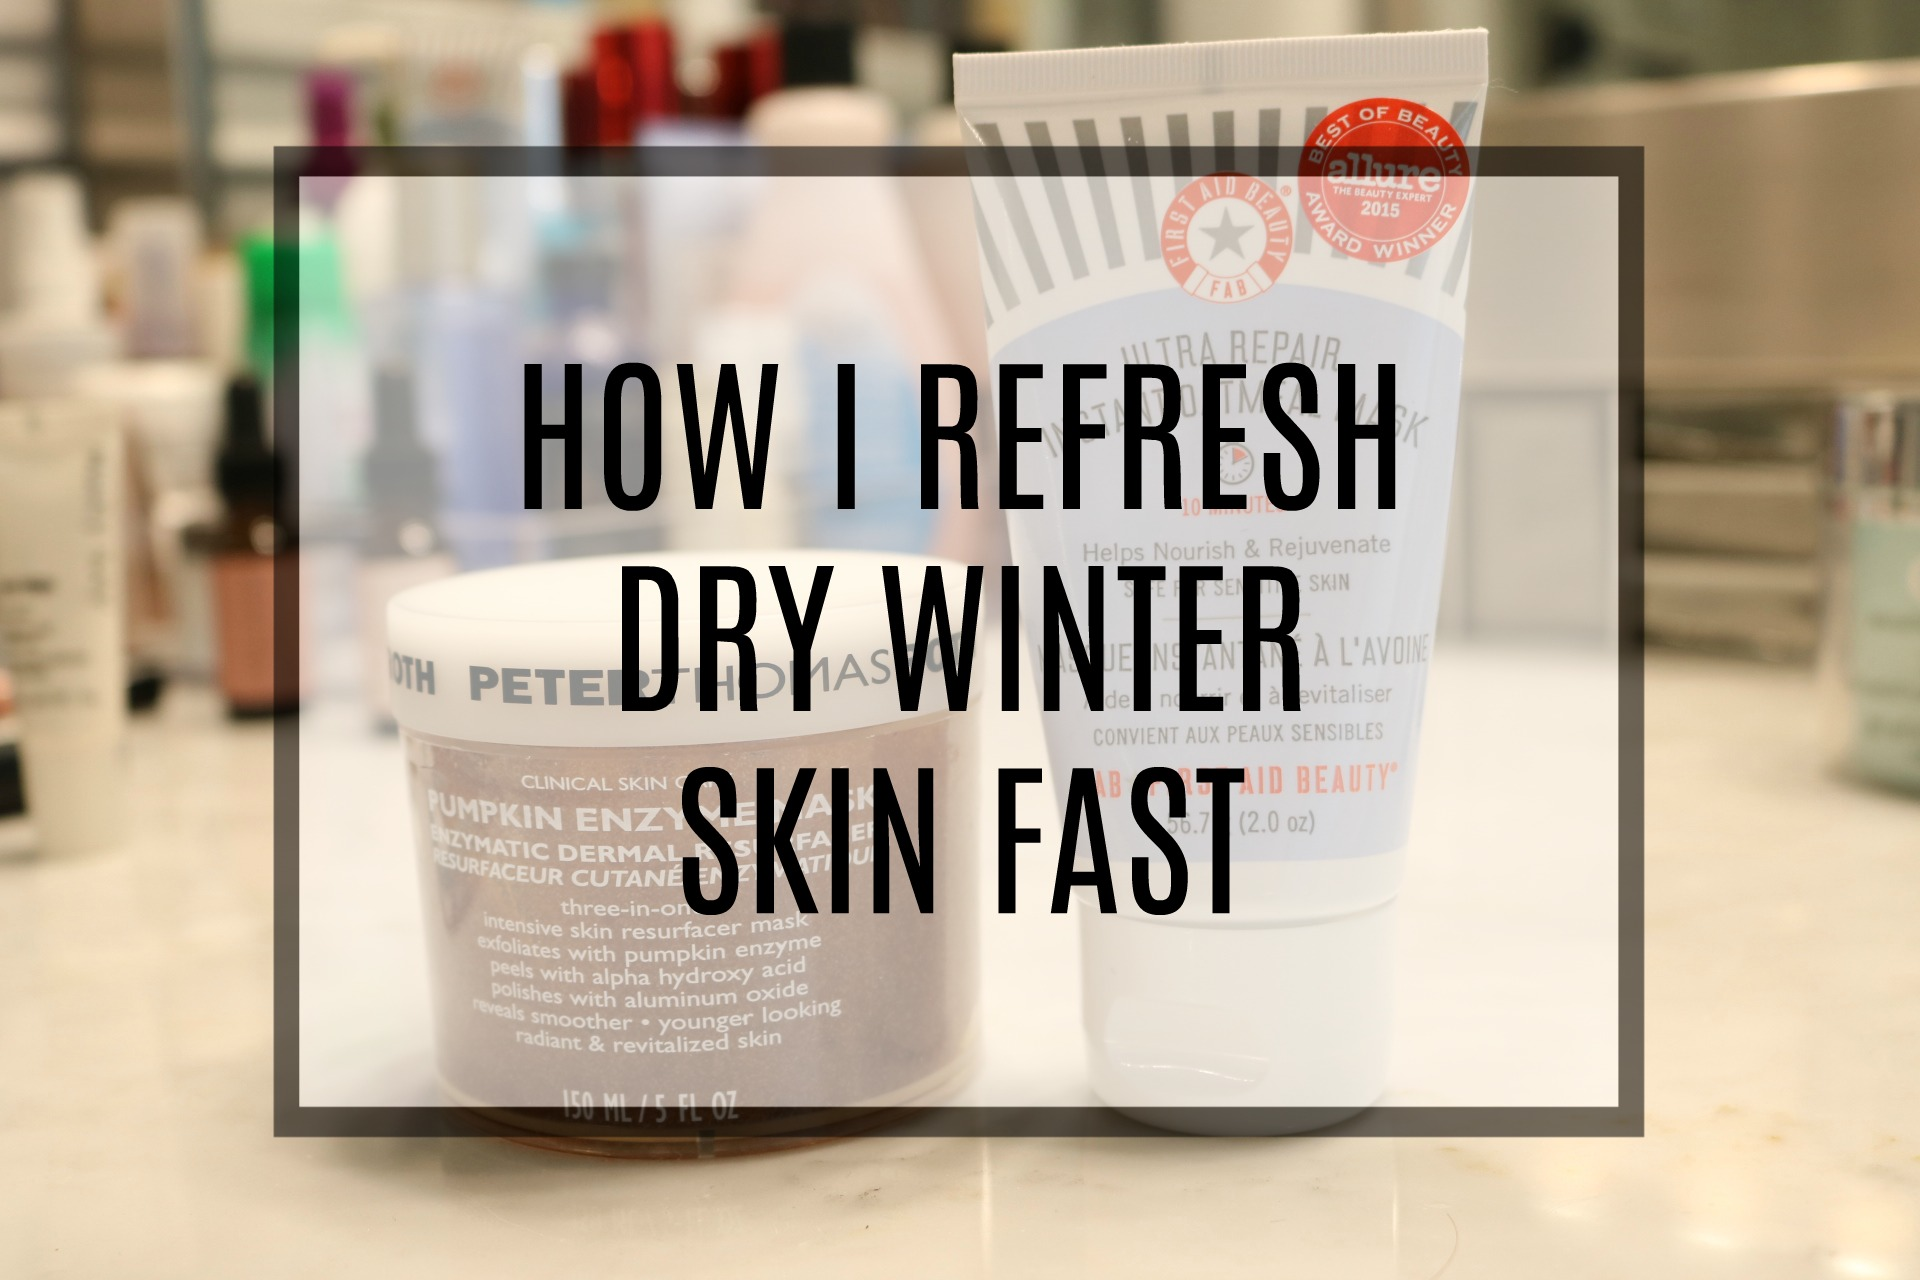 Refresh Dry Winter Skin Fast